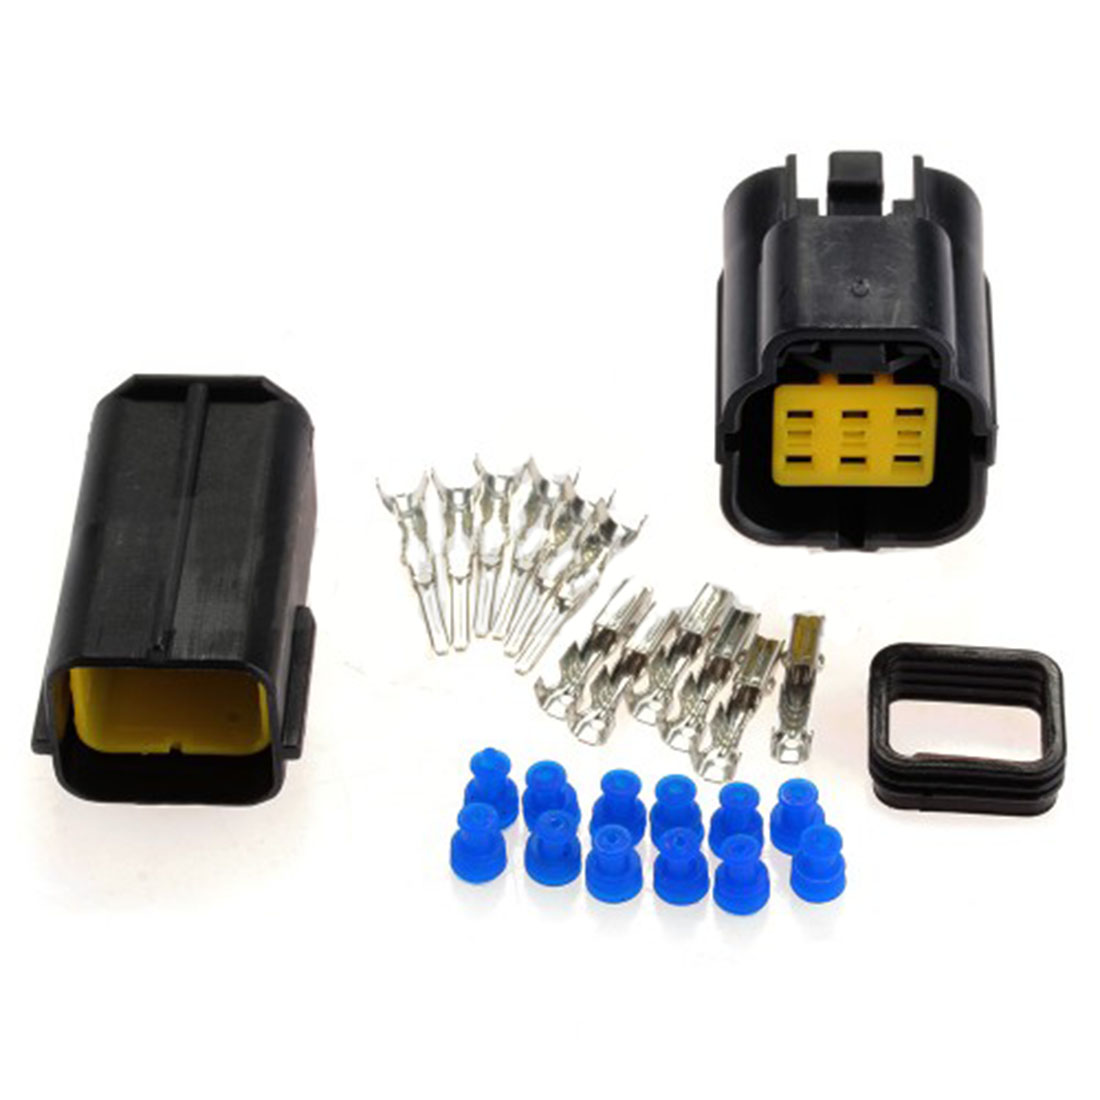 Top Quality 1 Kit 6 Pin Way Waterproof Wire Connector Plug Car Auto Wiring A Sealed Electrical Set For Truck Boat Ect